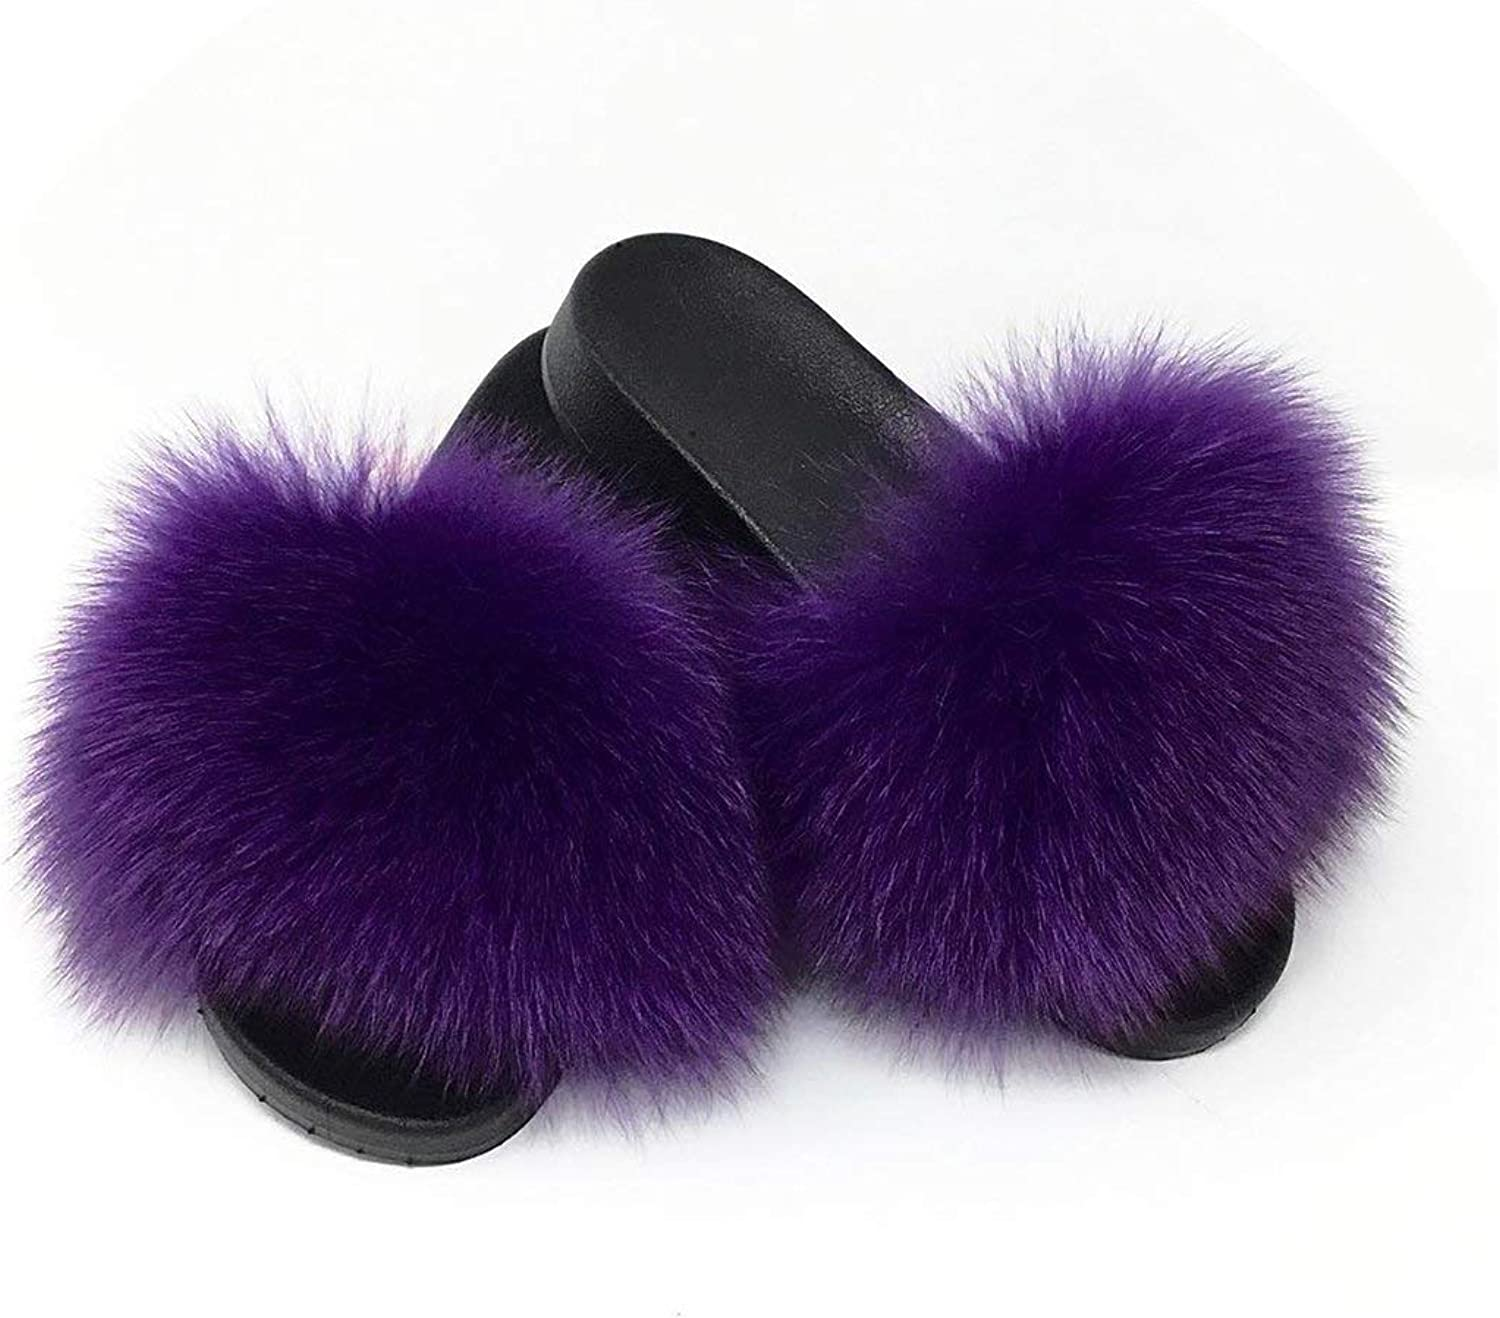 April With You 2019 Women's Summer Fur Slipper Flat Beach Slides Hot Sizes 36-45 Available